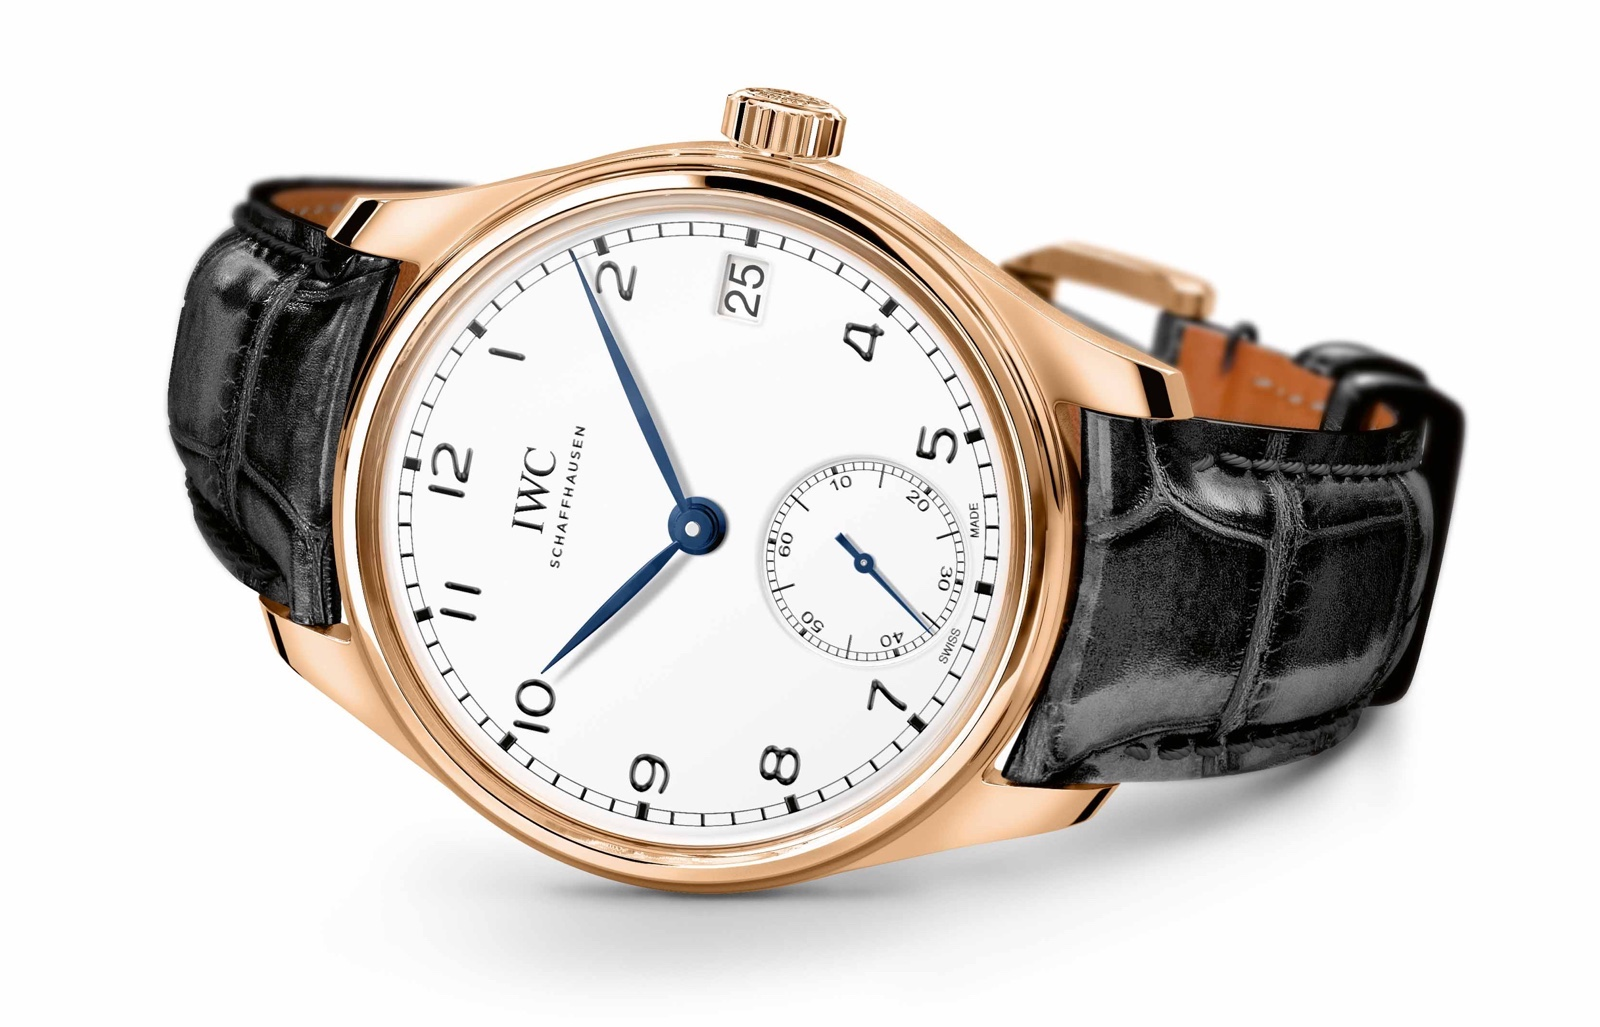 IWC Portugieser Hand Wound 8 Days 150 Years Coleccion Jubilee SIHH 2018